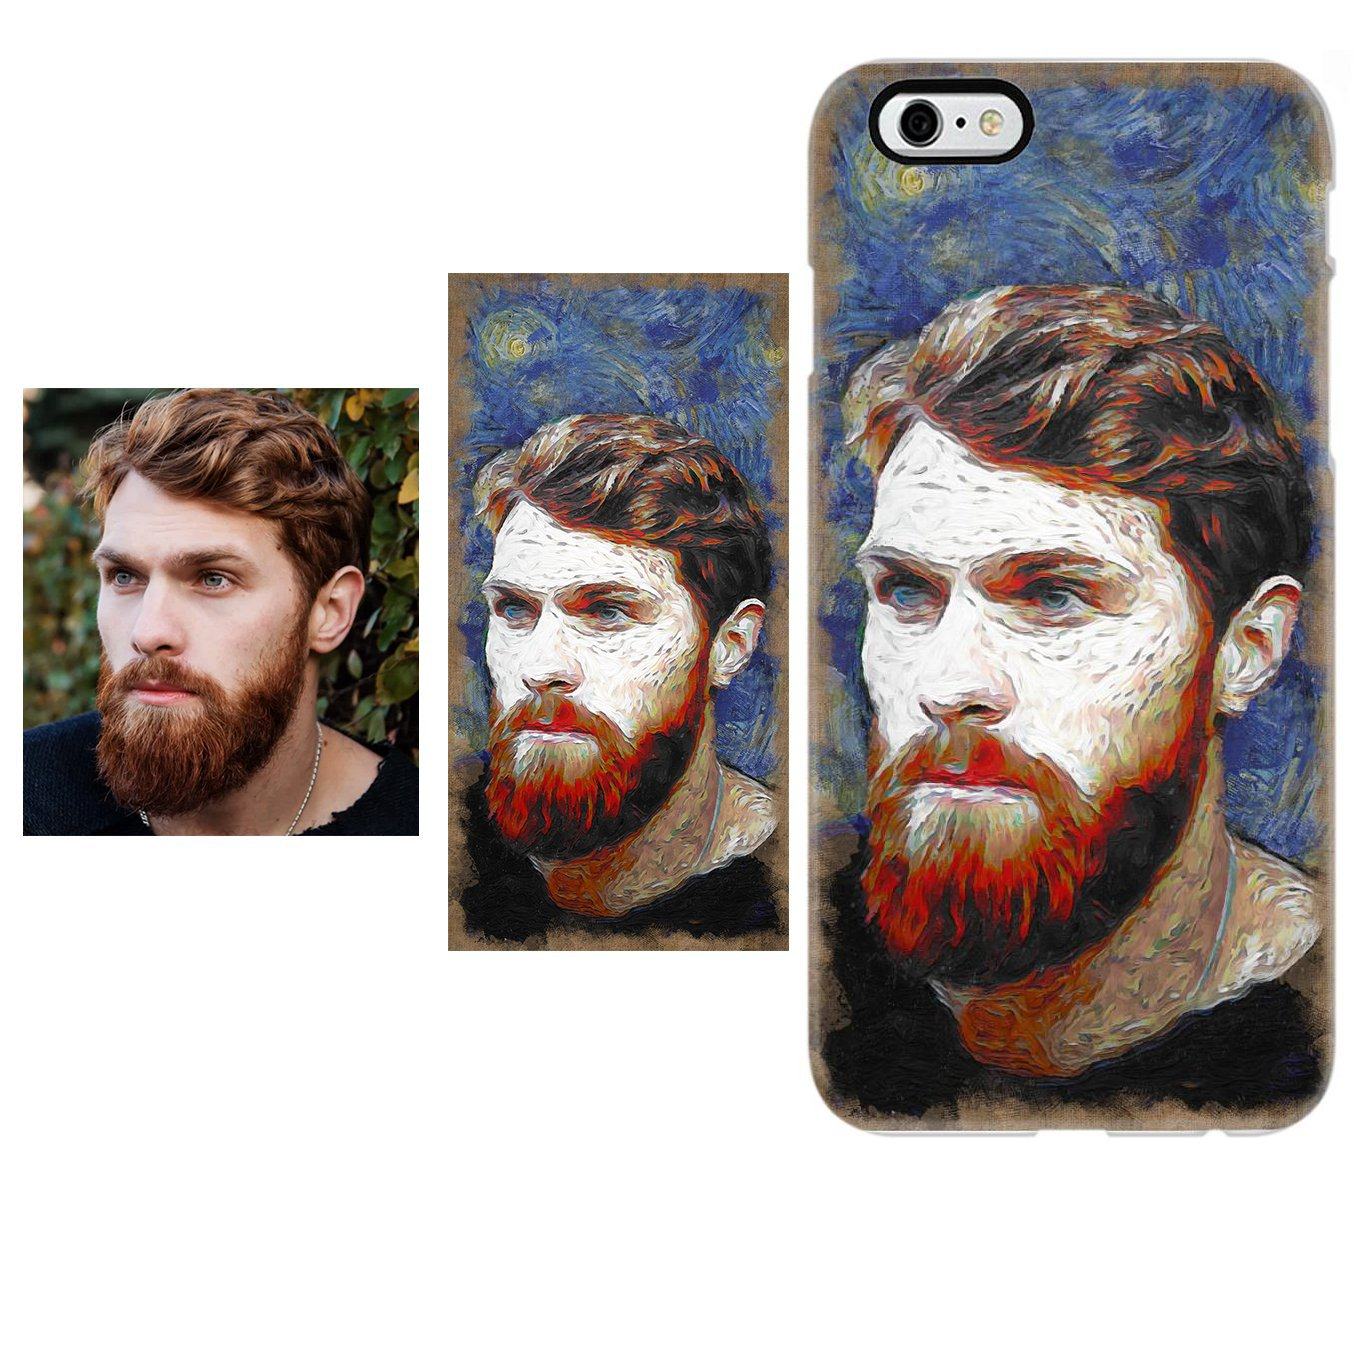 Van Gogh Photo Style - iPhone Case Custom Photo